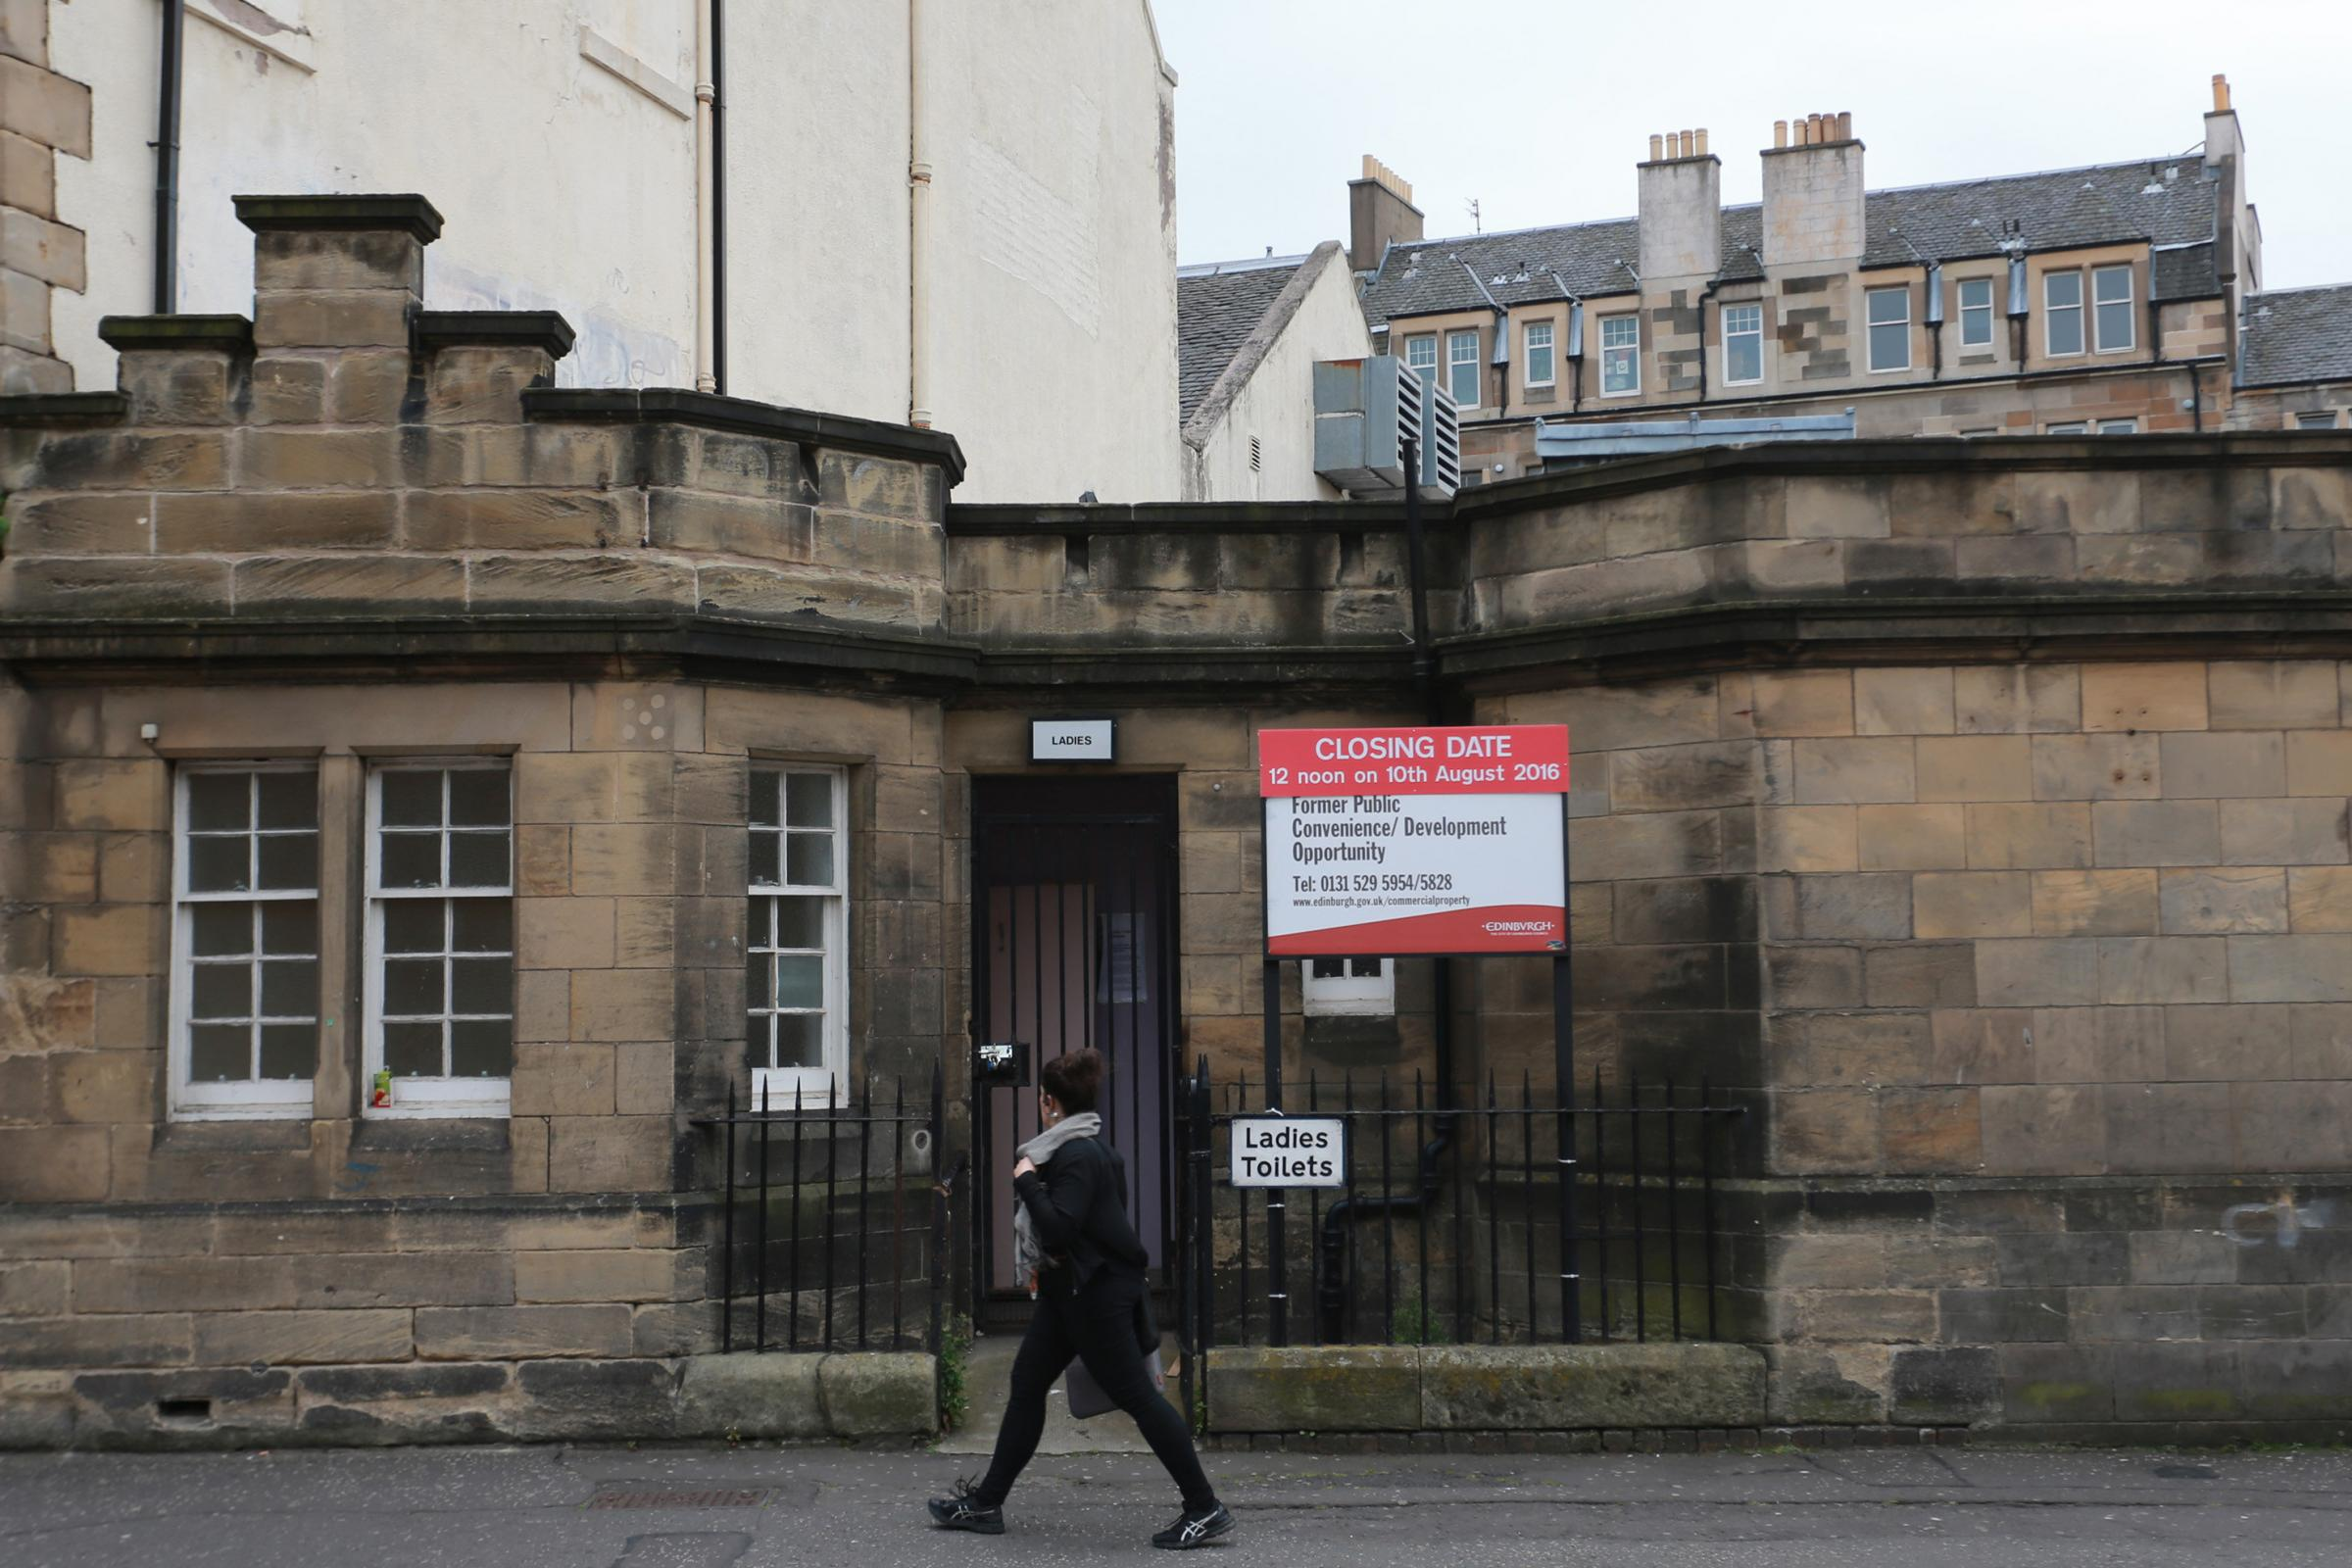 Well, nab yourself a new home in an Edinburgh public toilet for just £200k